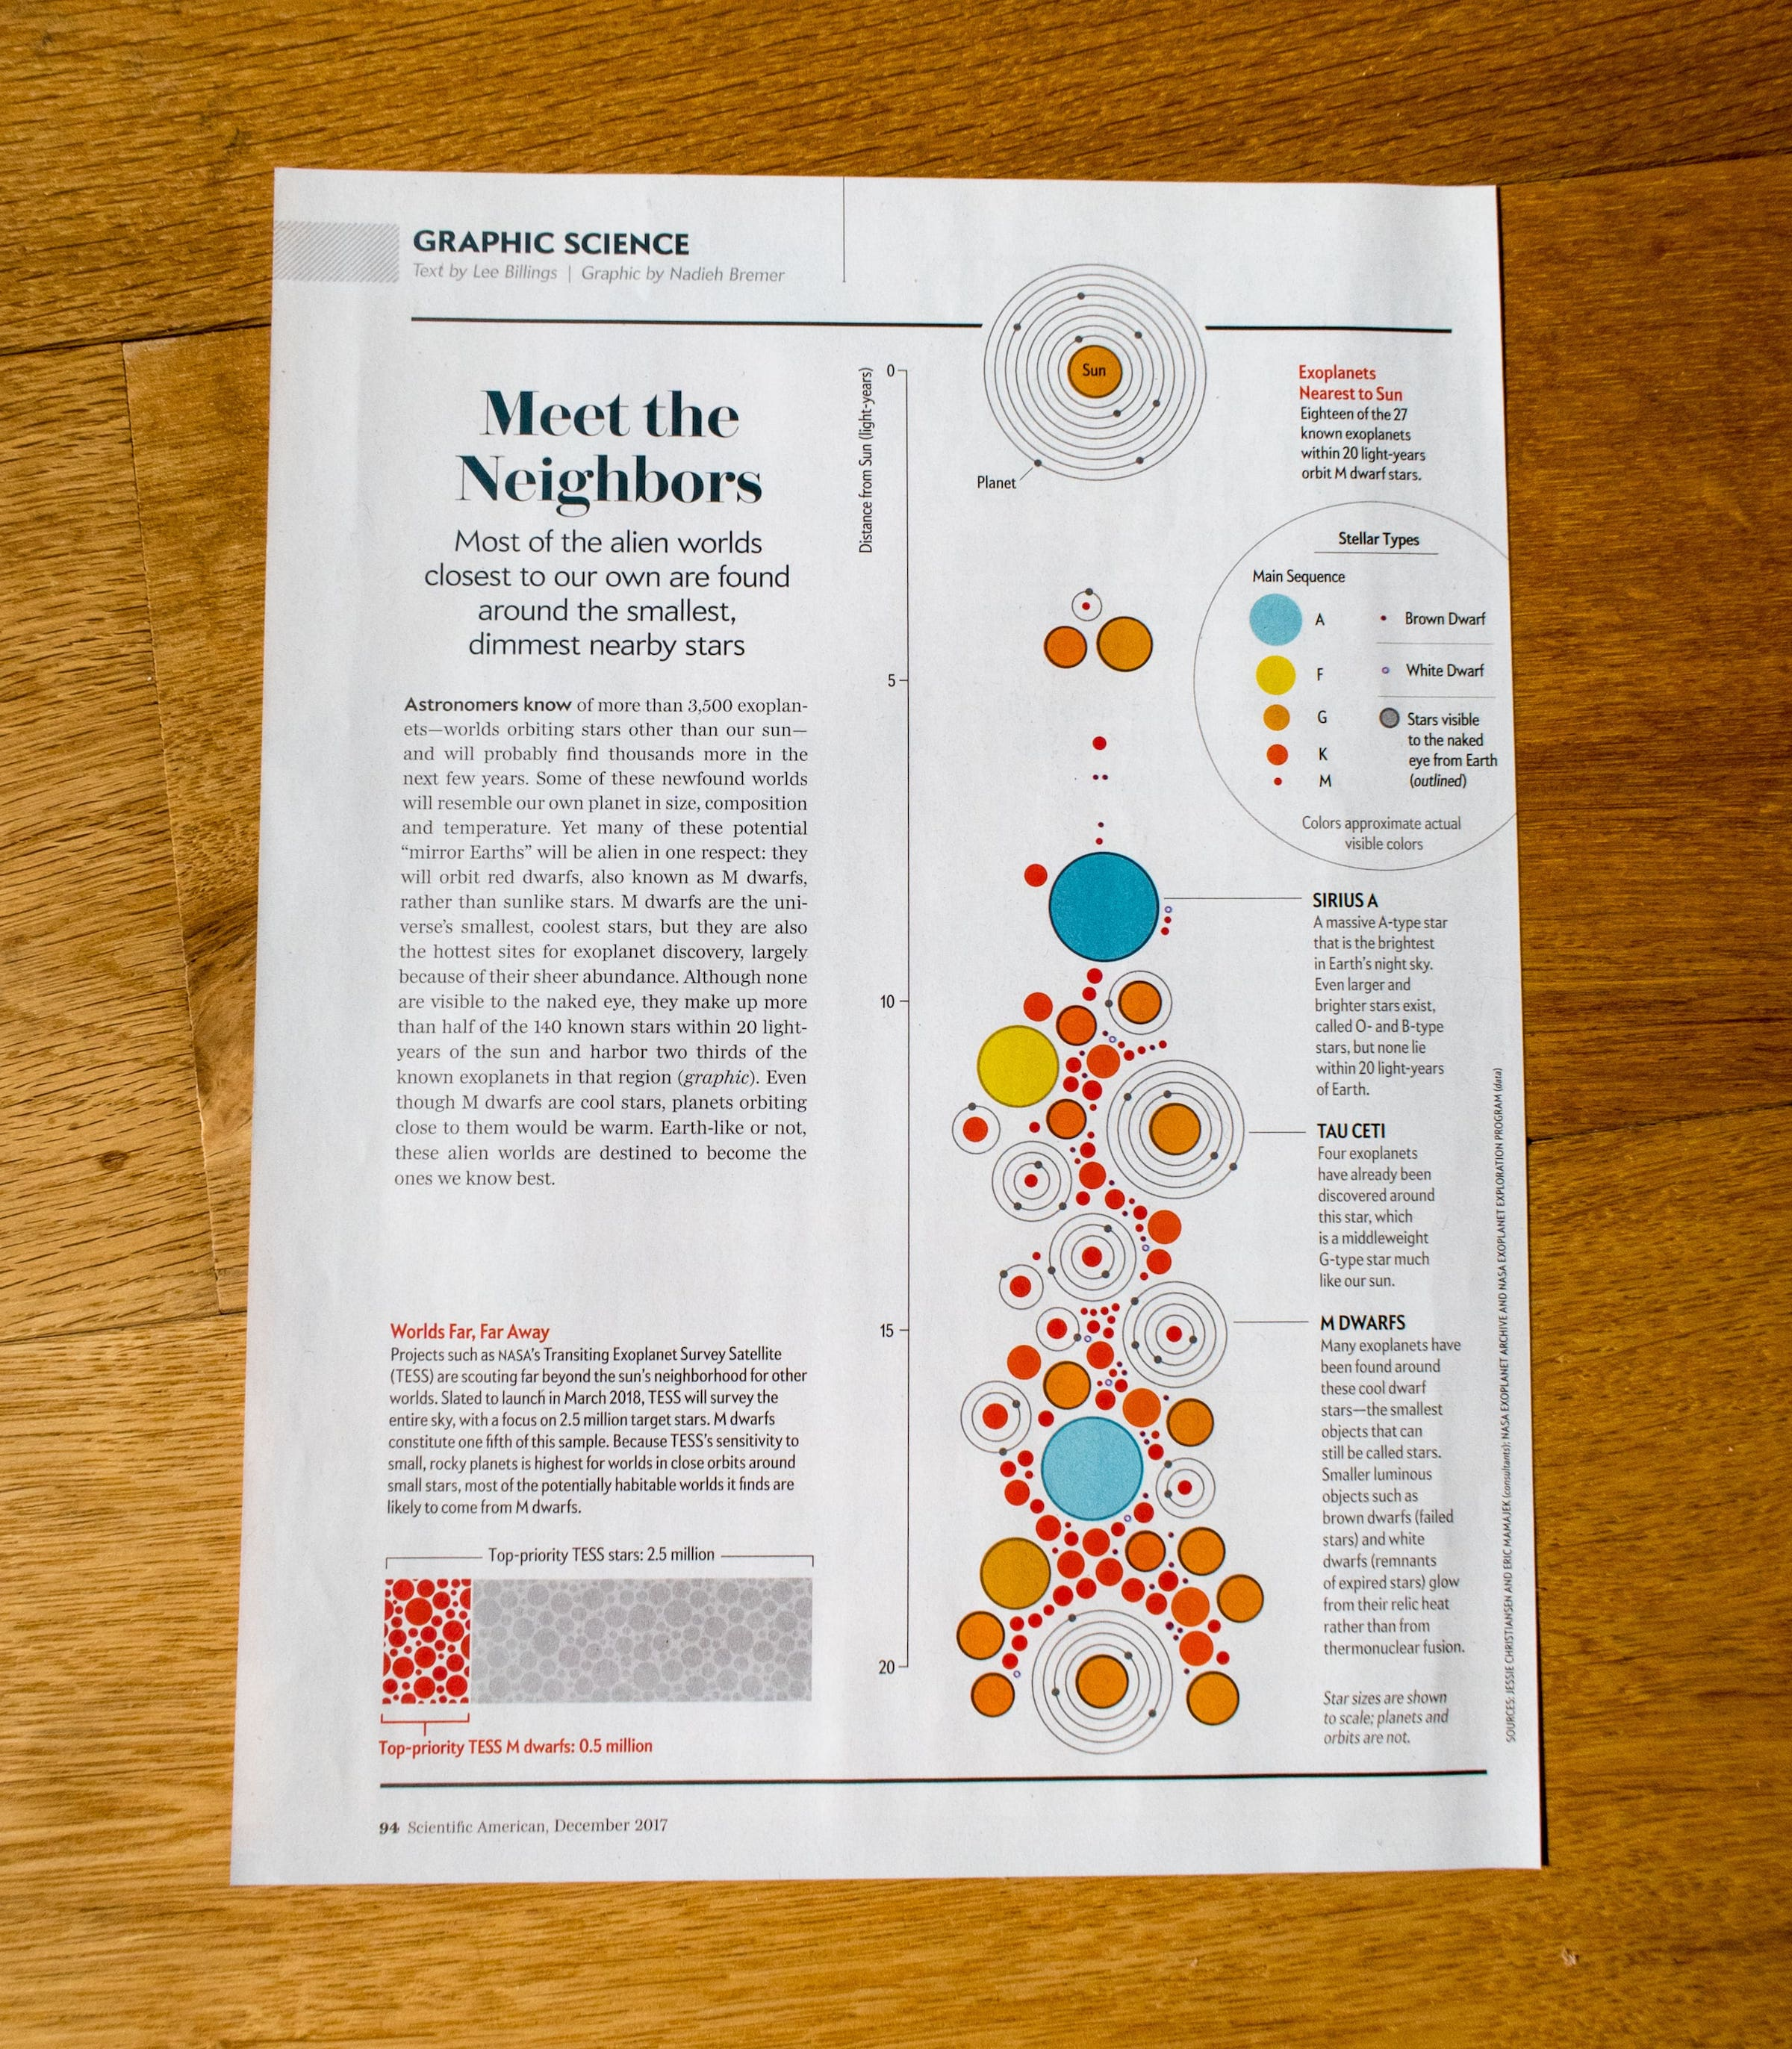 The full 'Graphic Science' page in the December edition of the Scientific American